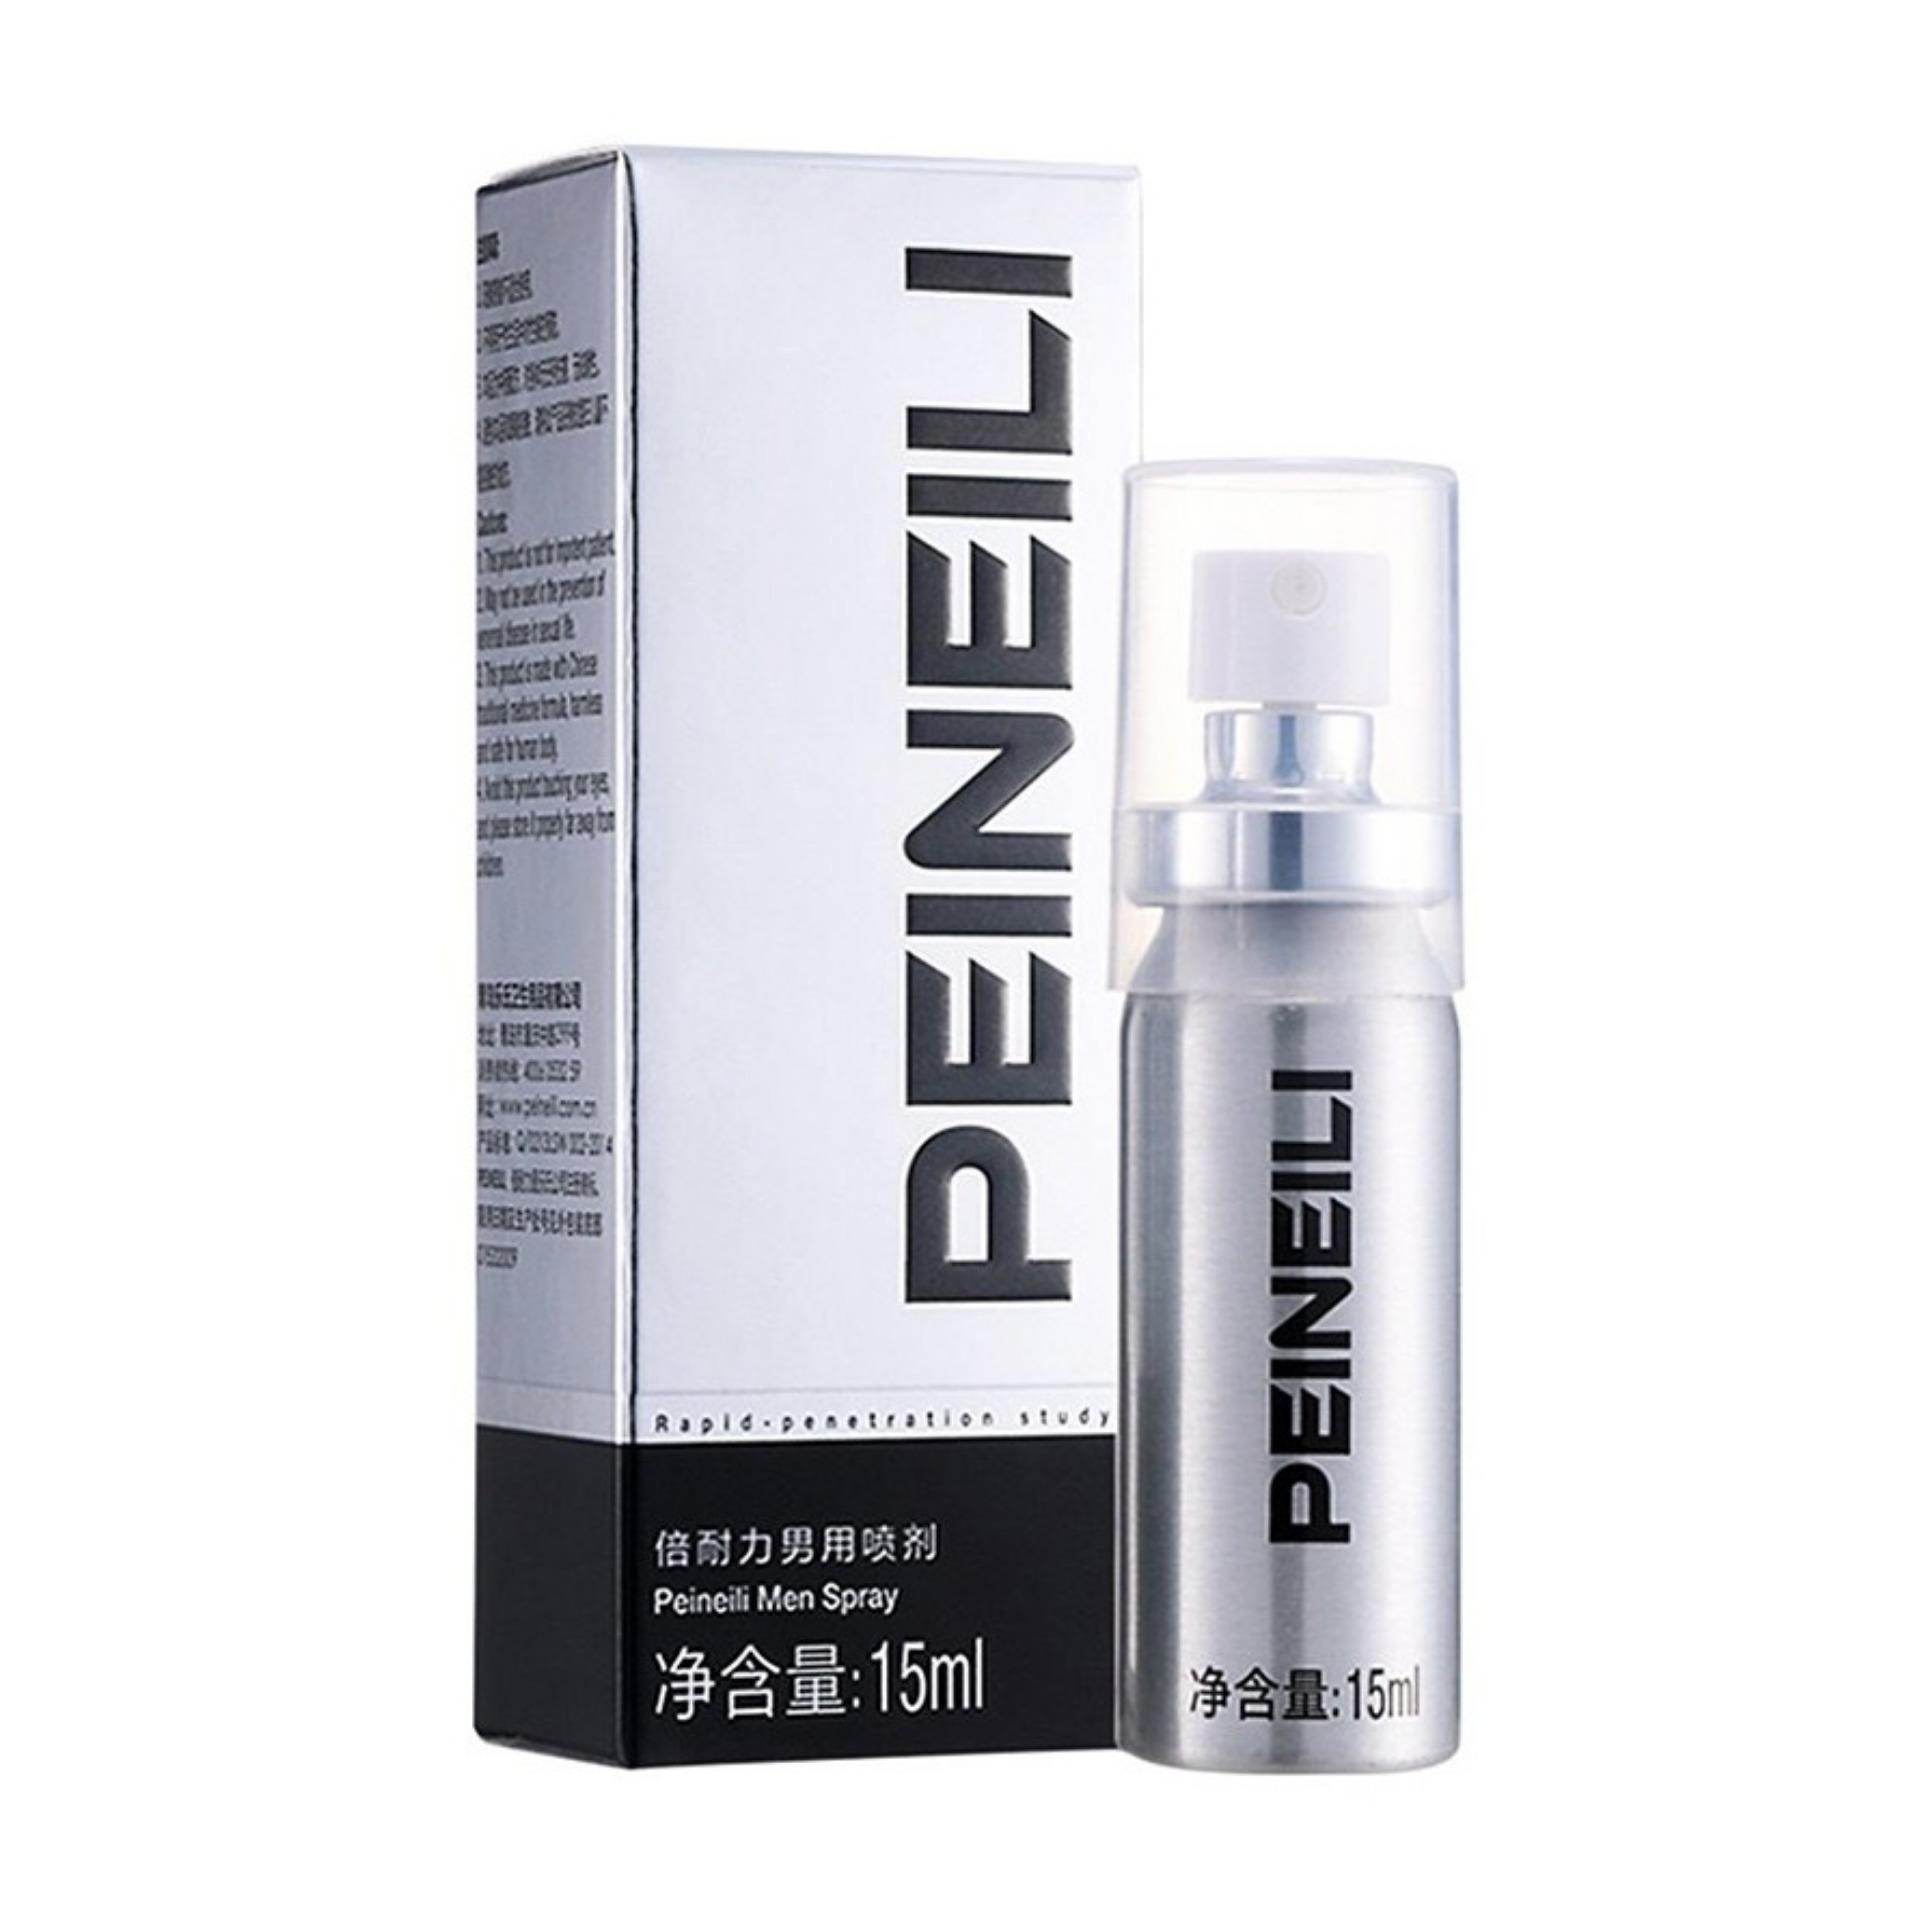 Peineili Men Spray - 15ml